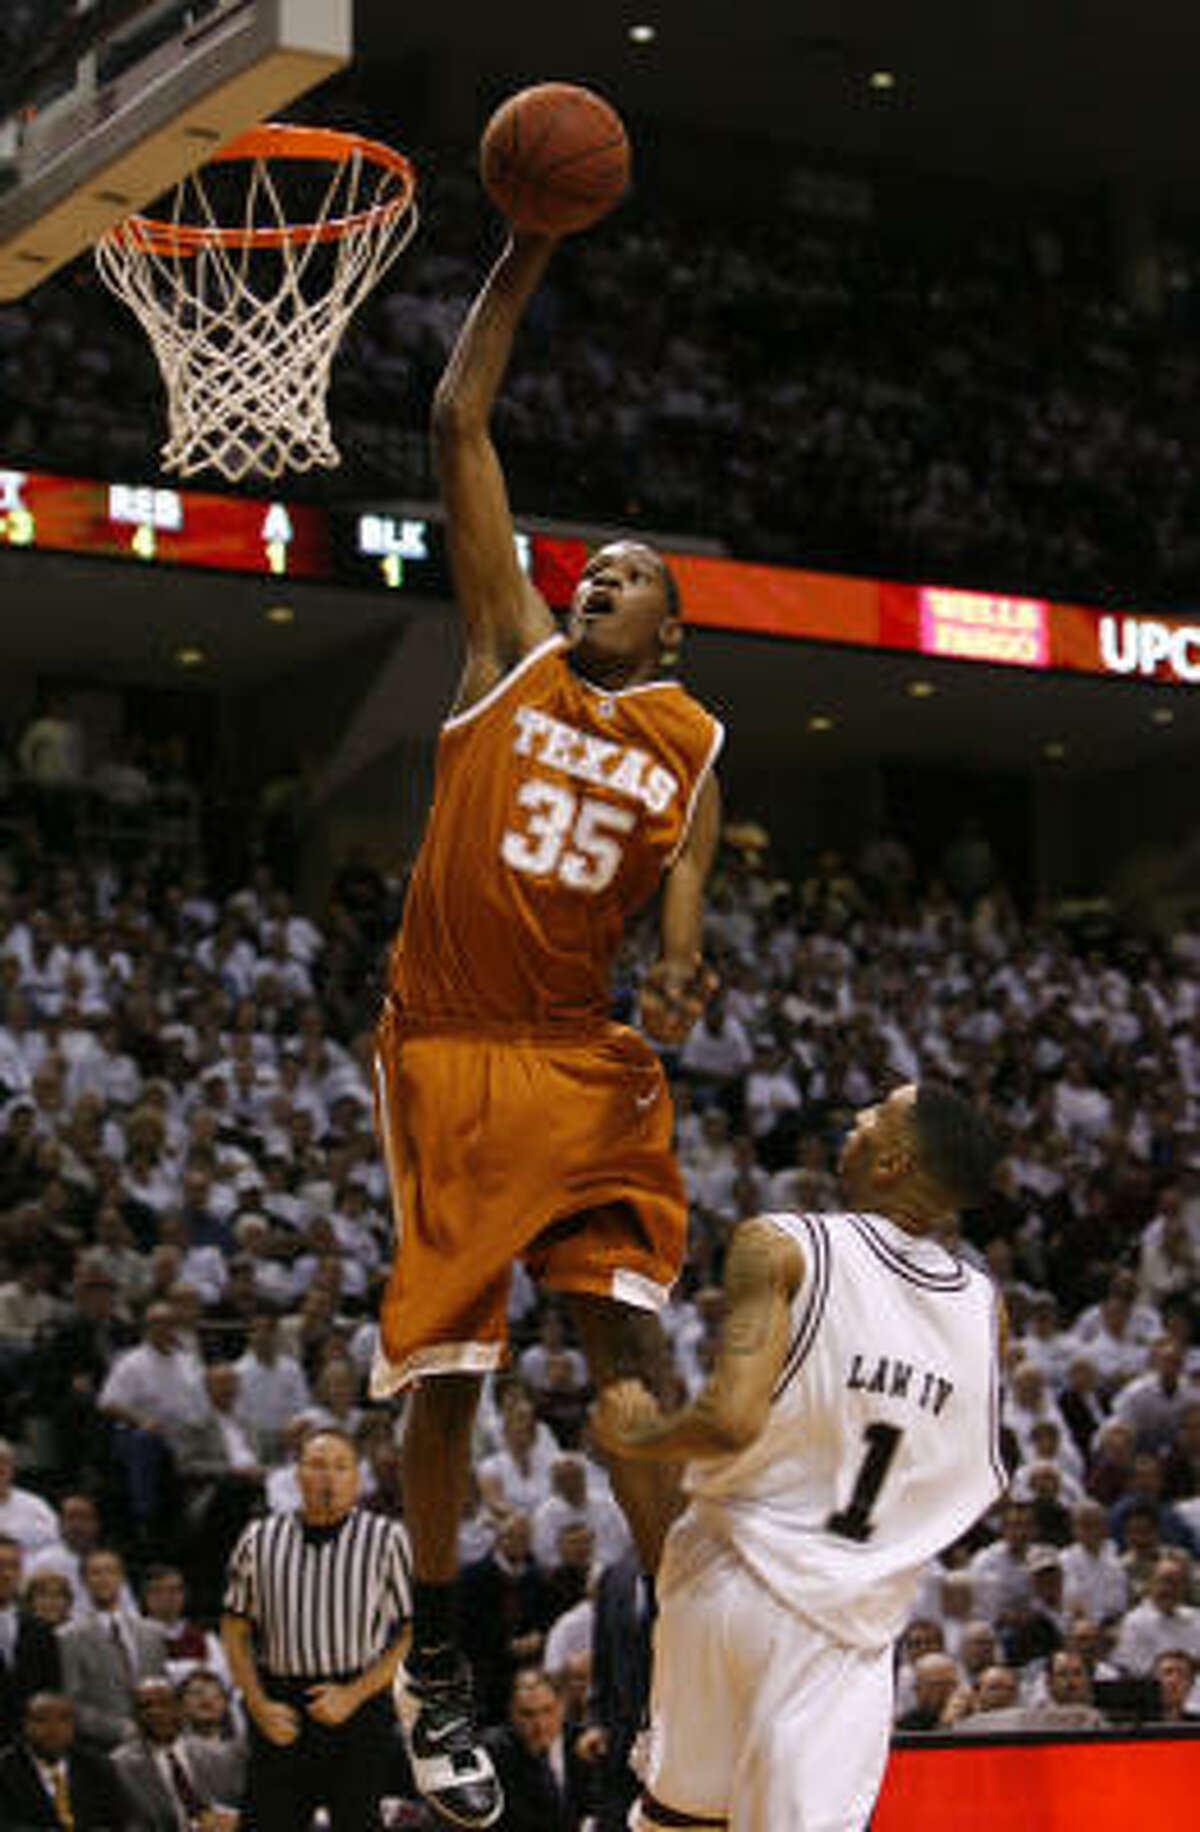 Kevin Durant dunks during the first half of the Longhorns' game against Texas A&M in College Station. The Longhorns lost 100-82.